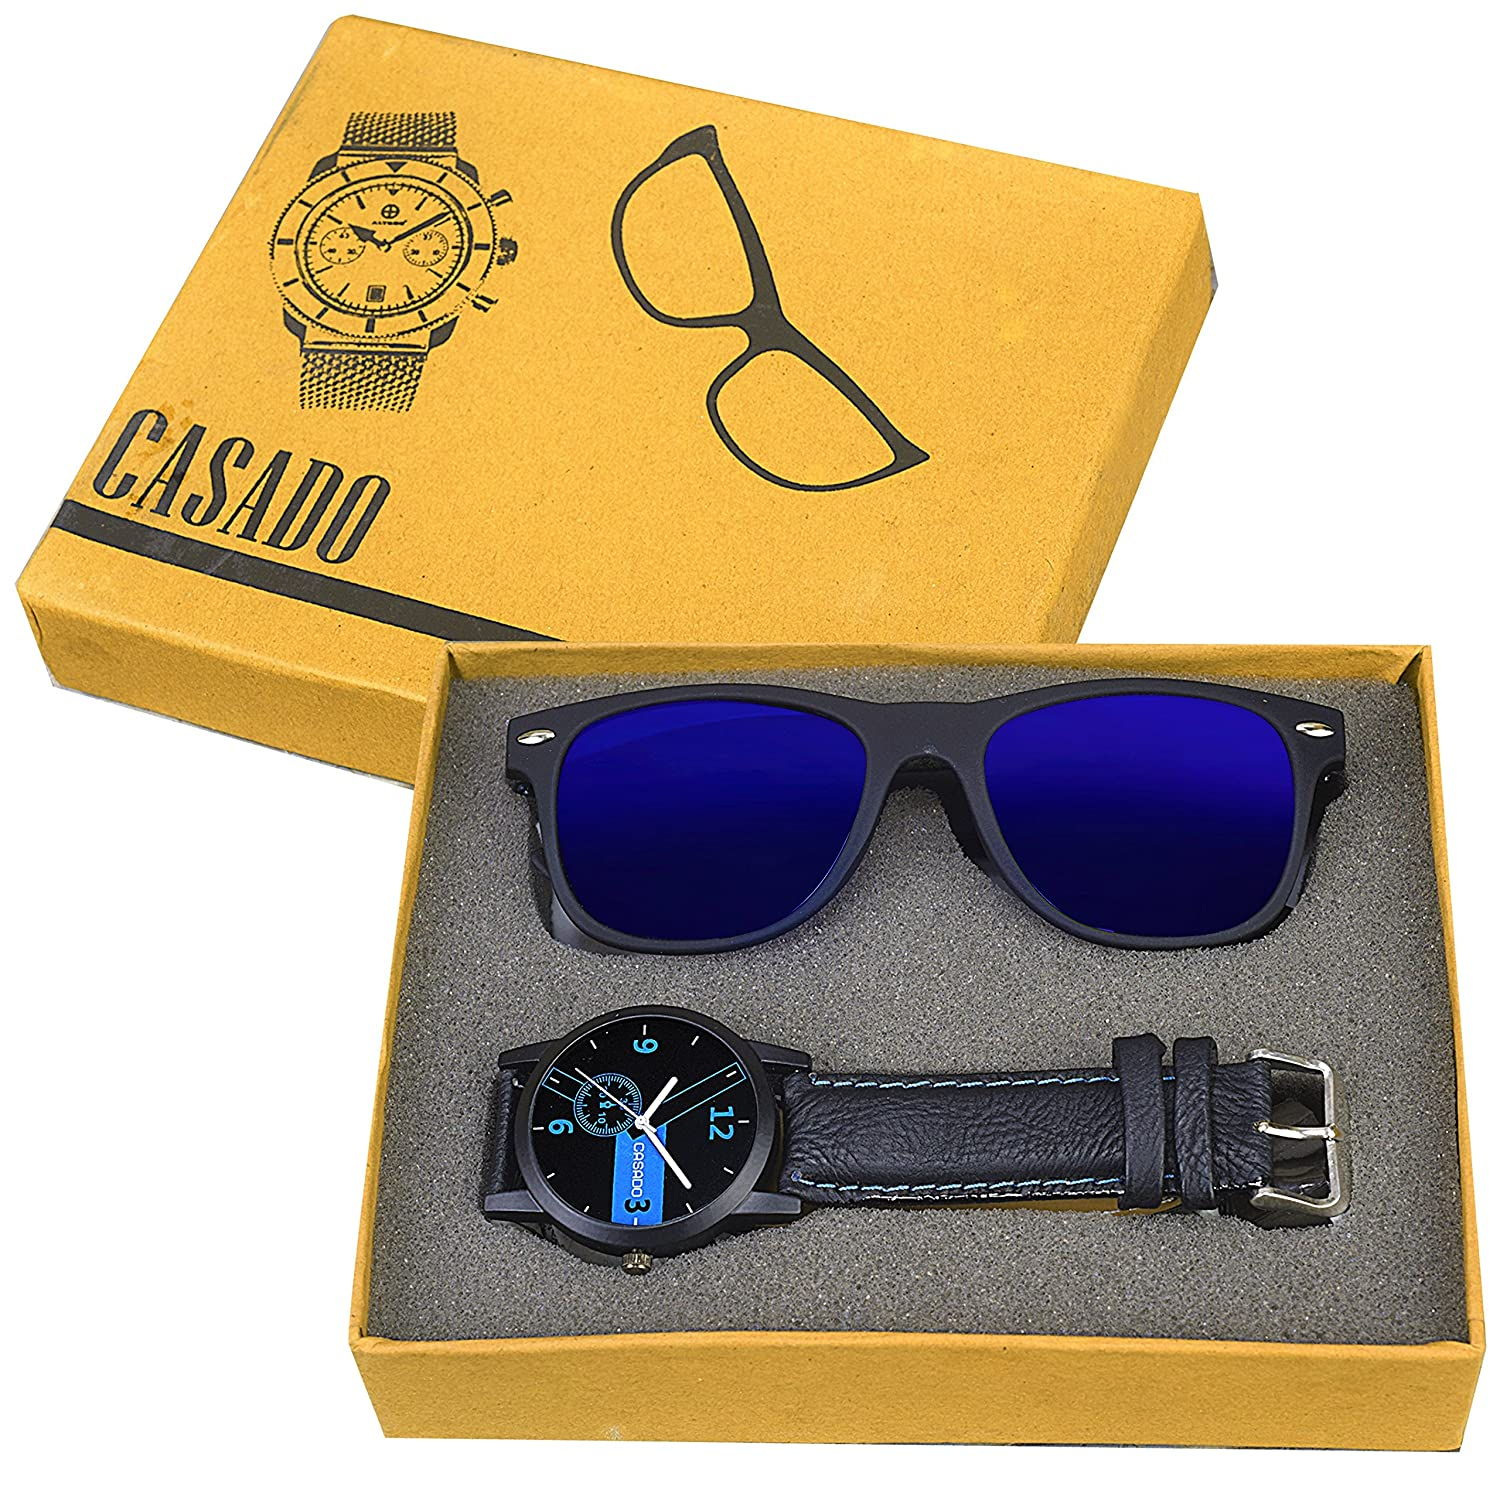 CASADO BLACK SLIM Series Round Analog Wrist Watch and 1 Blue Reflector Wayfraer Sunglasses for Men's AND Boy's